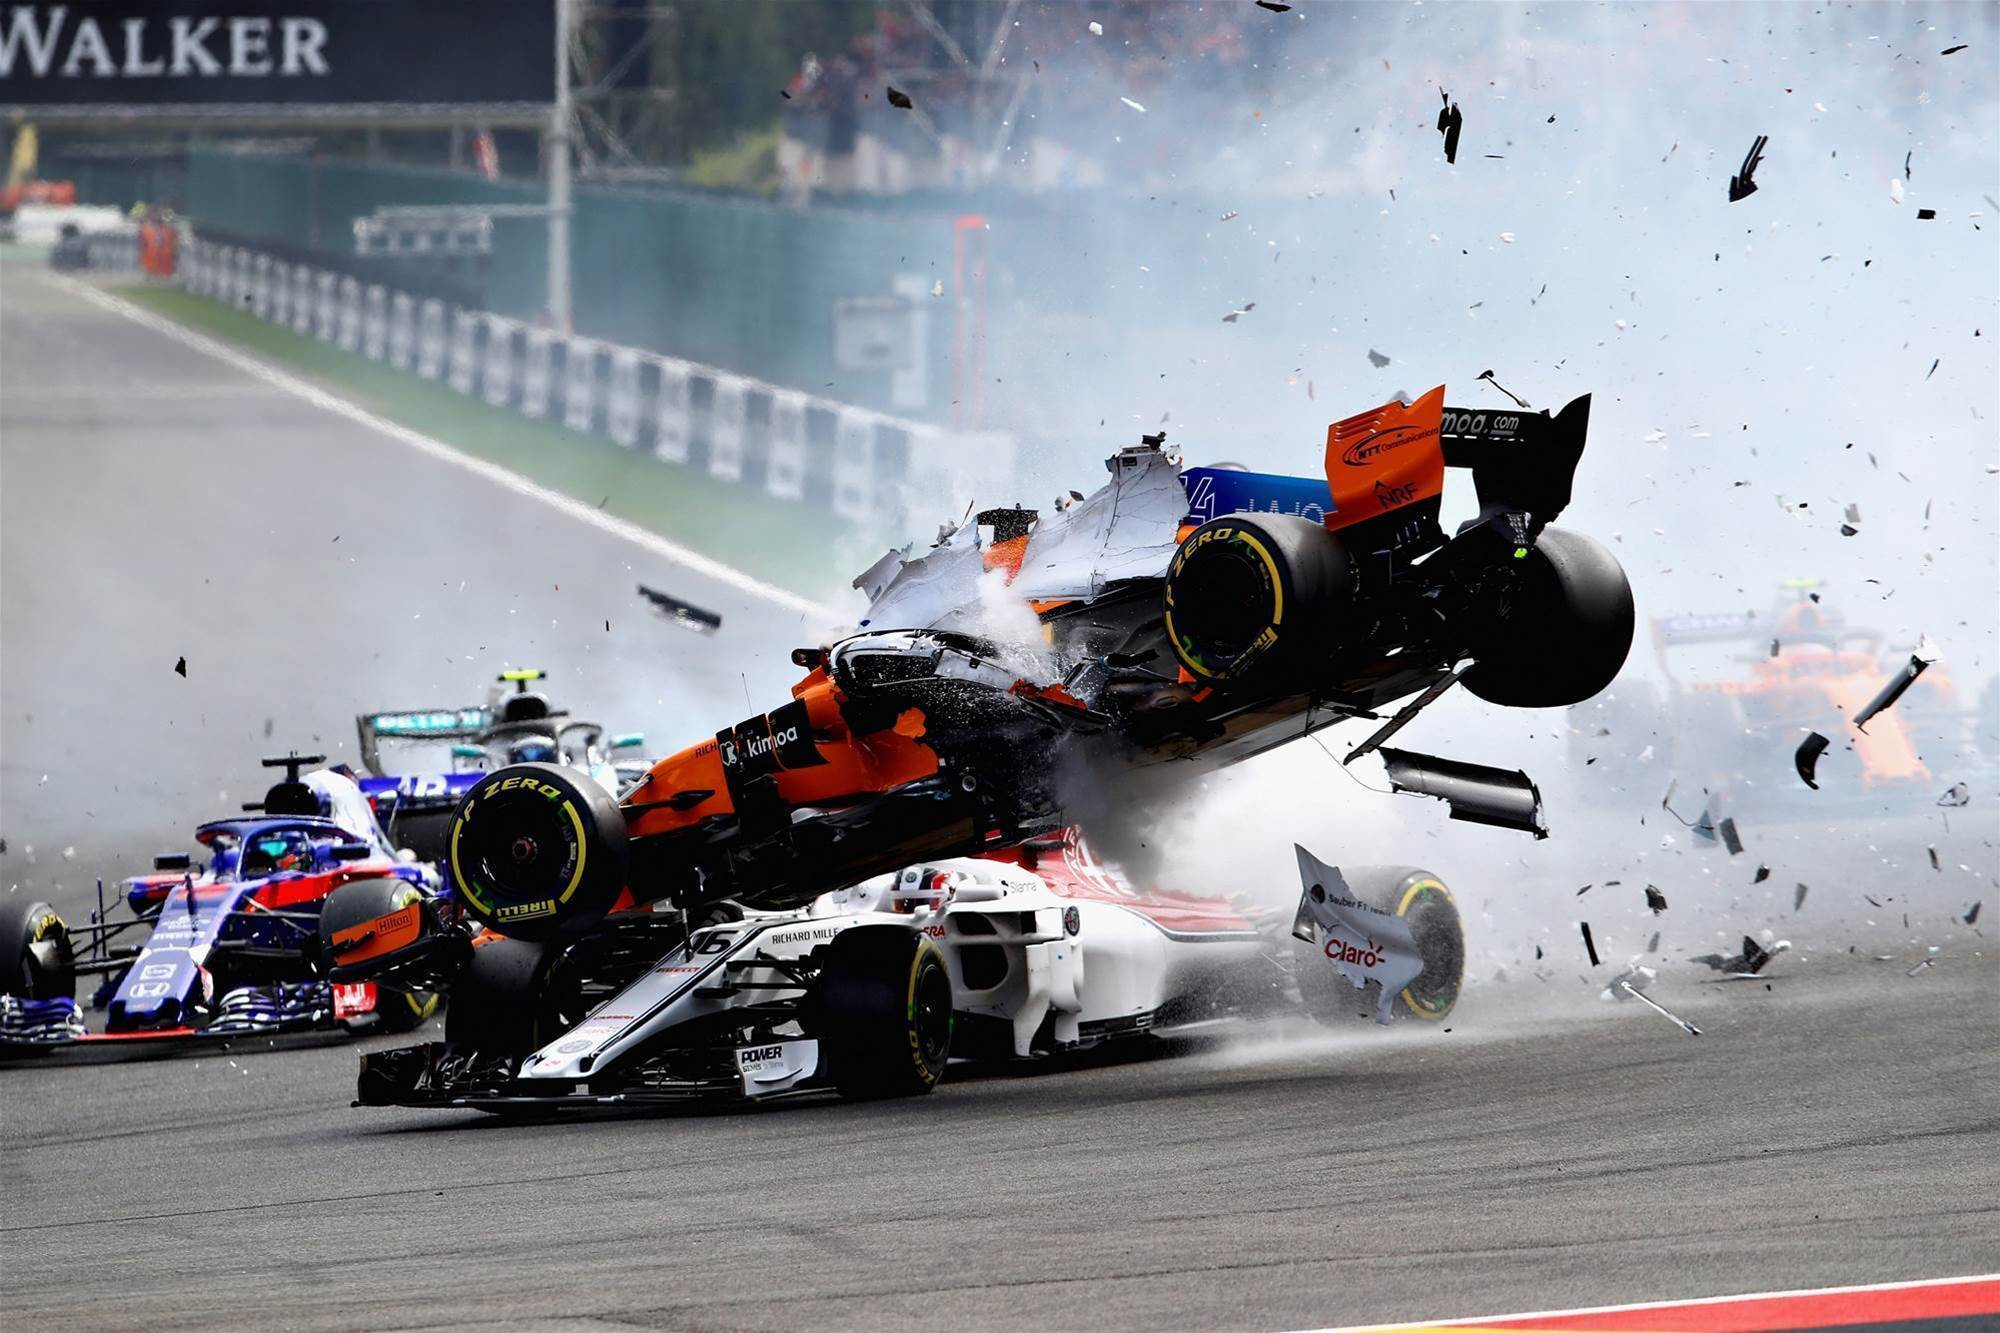 Pic gallery: Alonso's Spa F1 wipeout